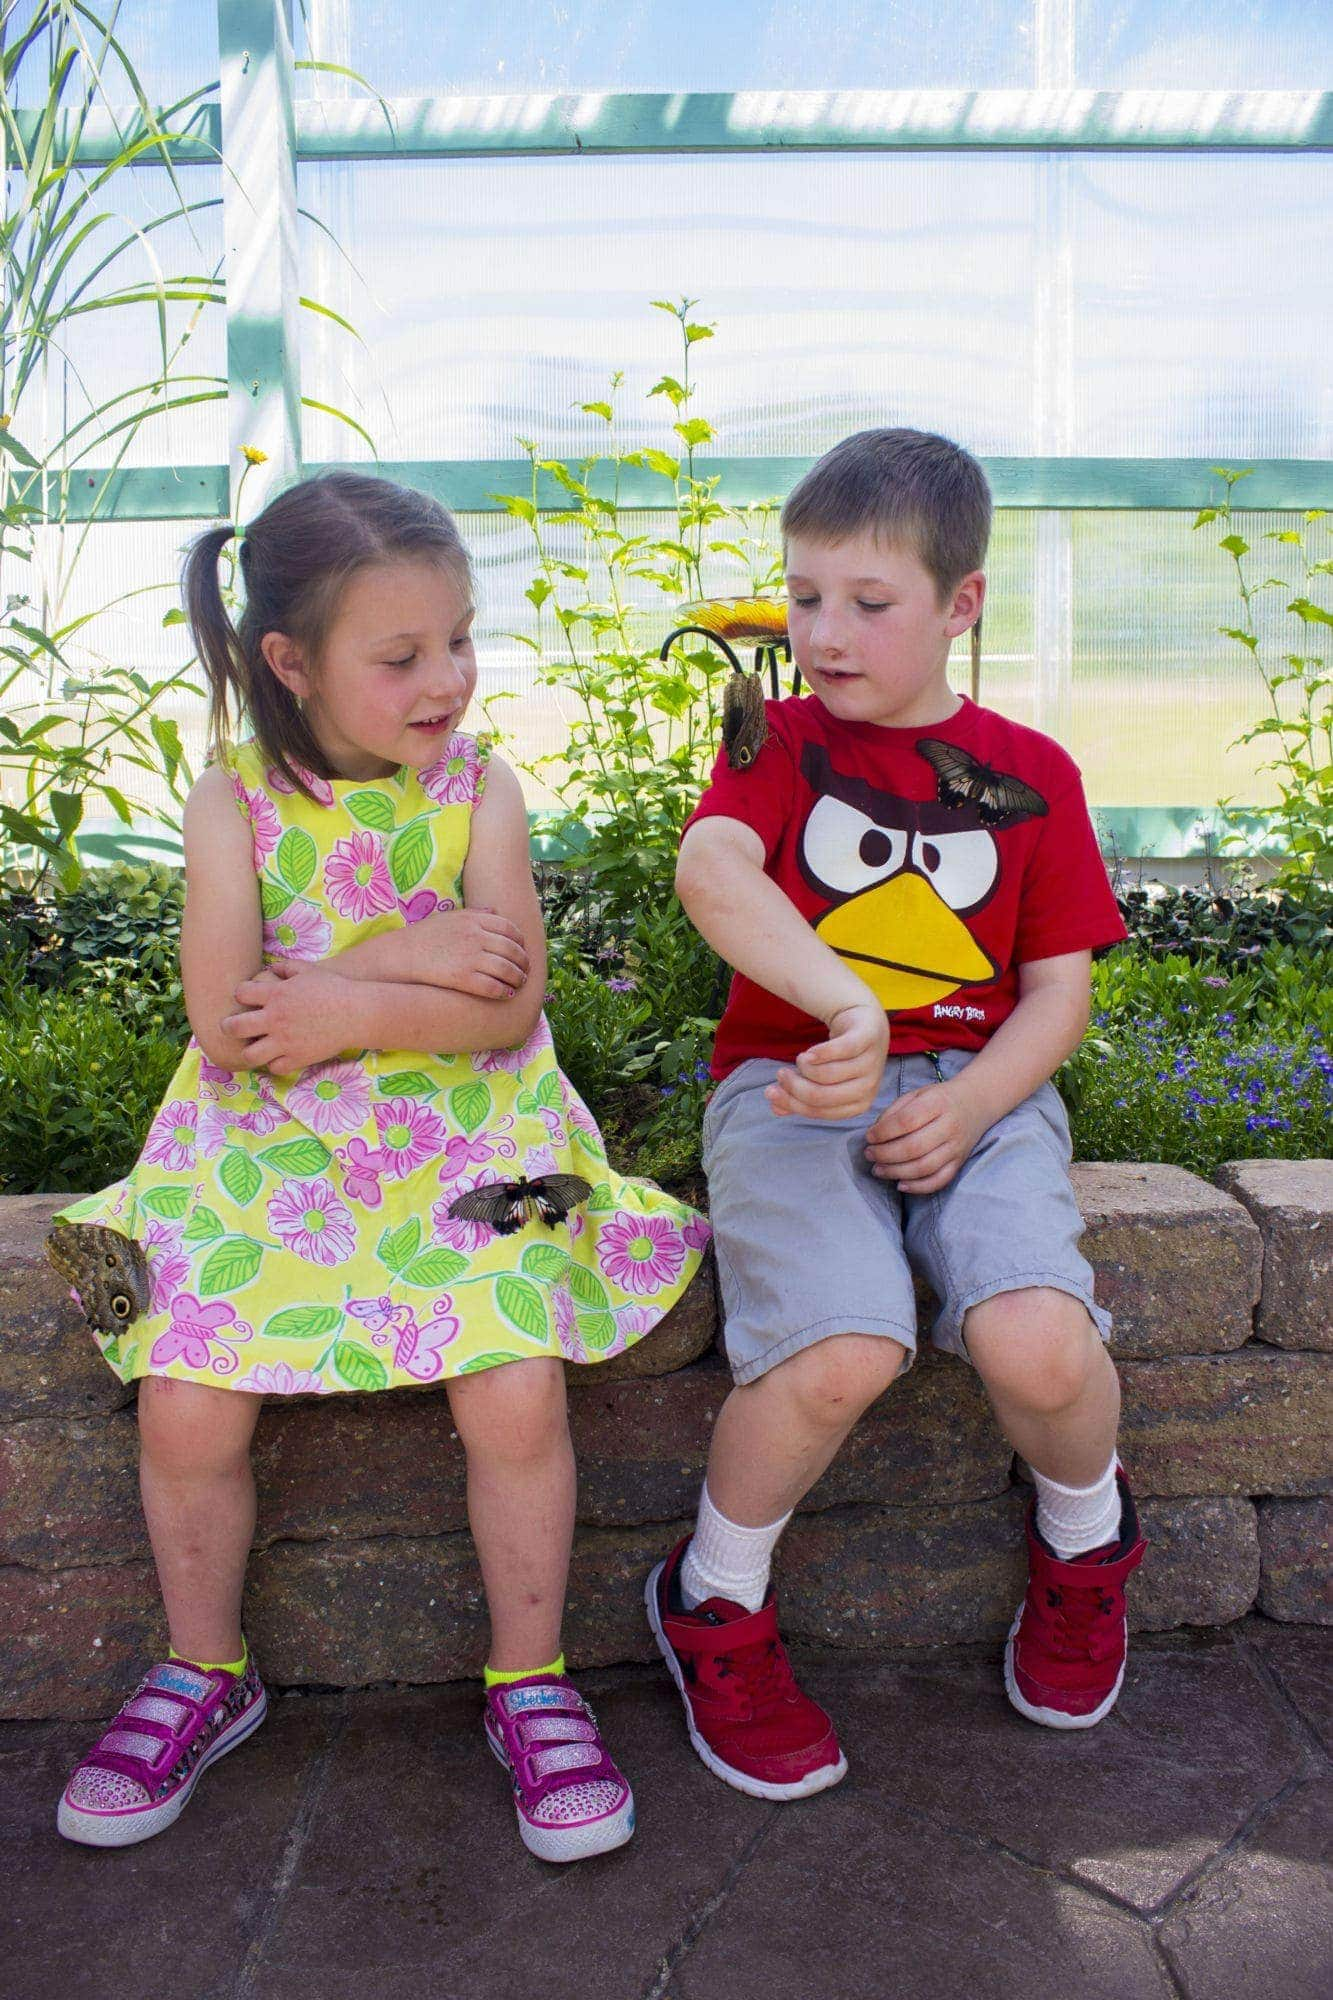 Four-year-old Alayna Thompson and six-year-old Beau Thompson stopped by the G.T. Butterfly House & Bug Zoo with their grandparents while visiting from Kentucky.